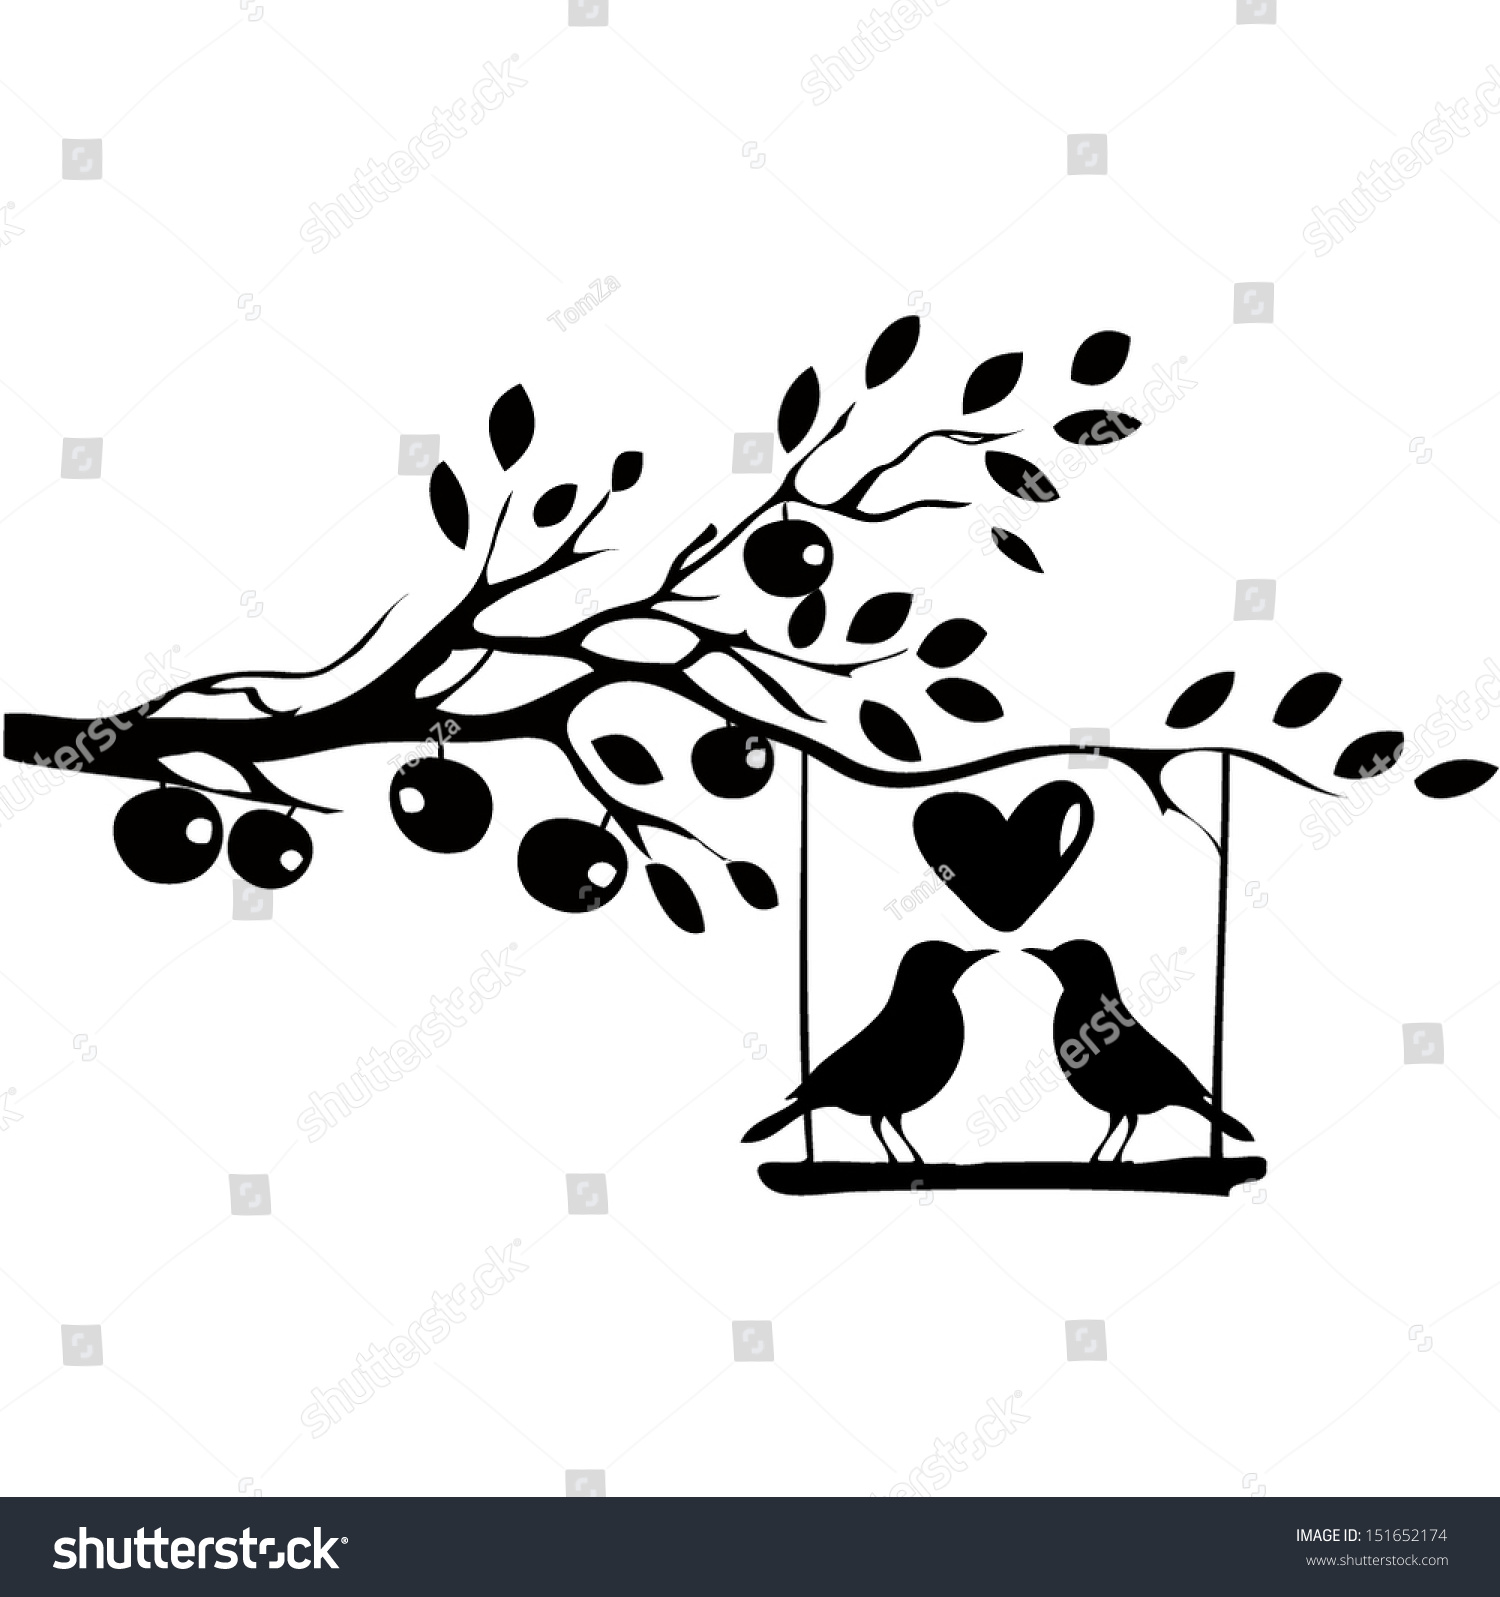 Love bird silhouette